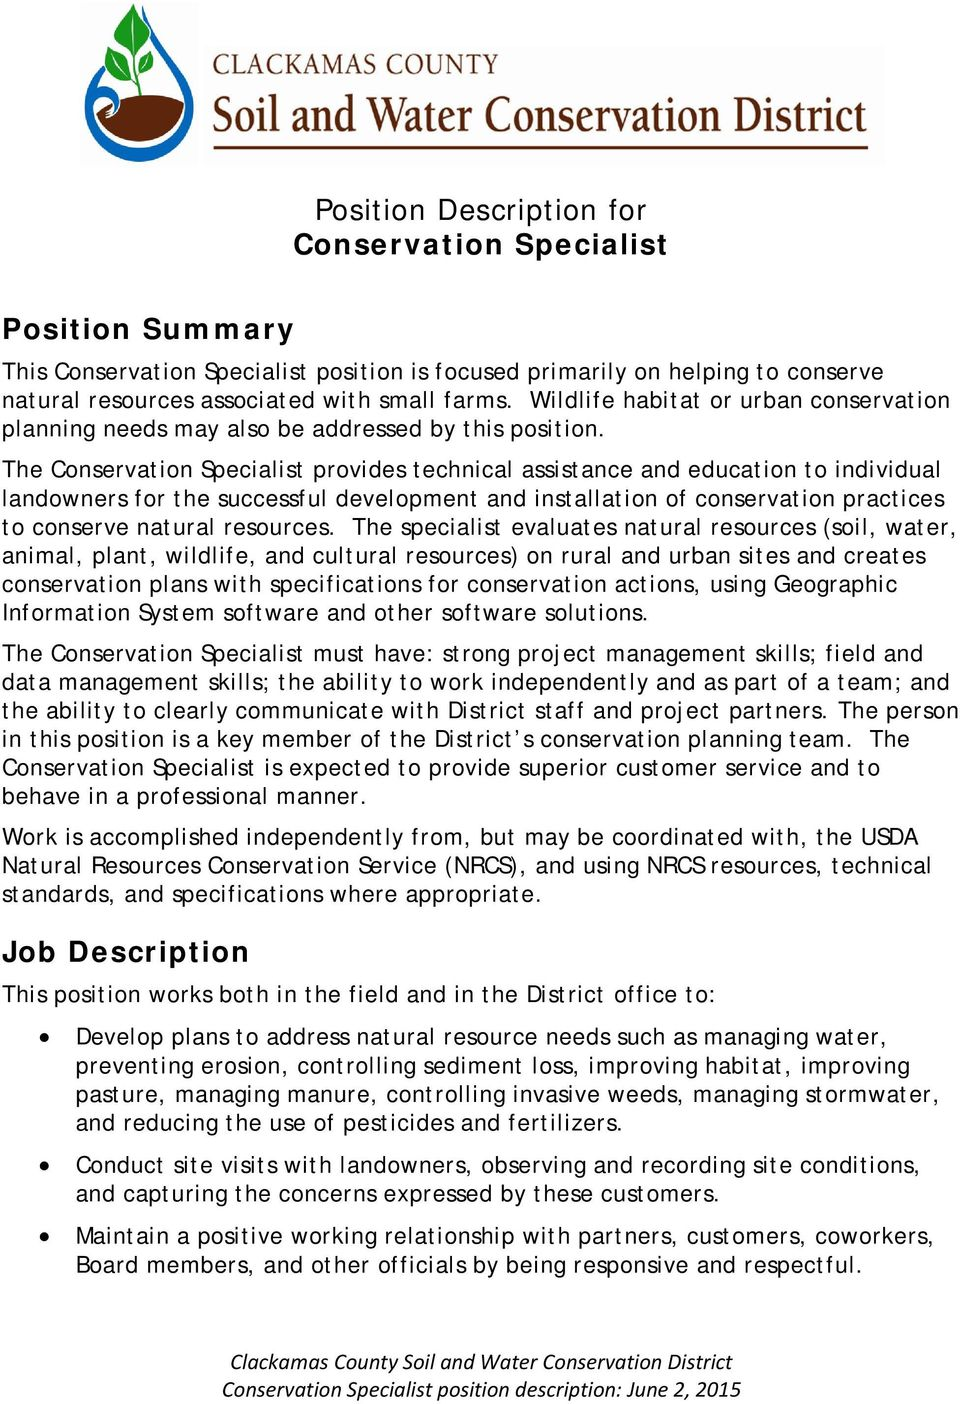 The Conservation Specialist provides technical assistance and education to individual landowners for the successful development and installation of conservation practices to conserve natural